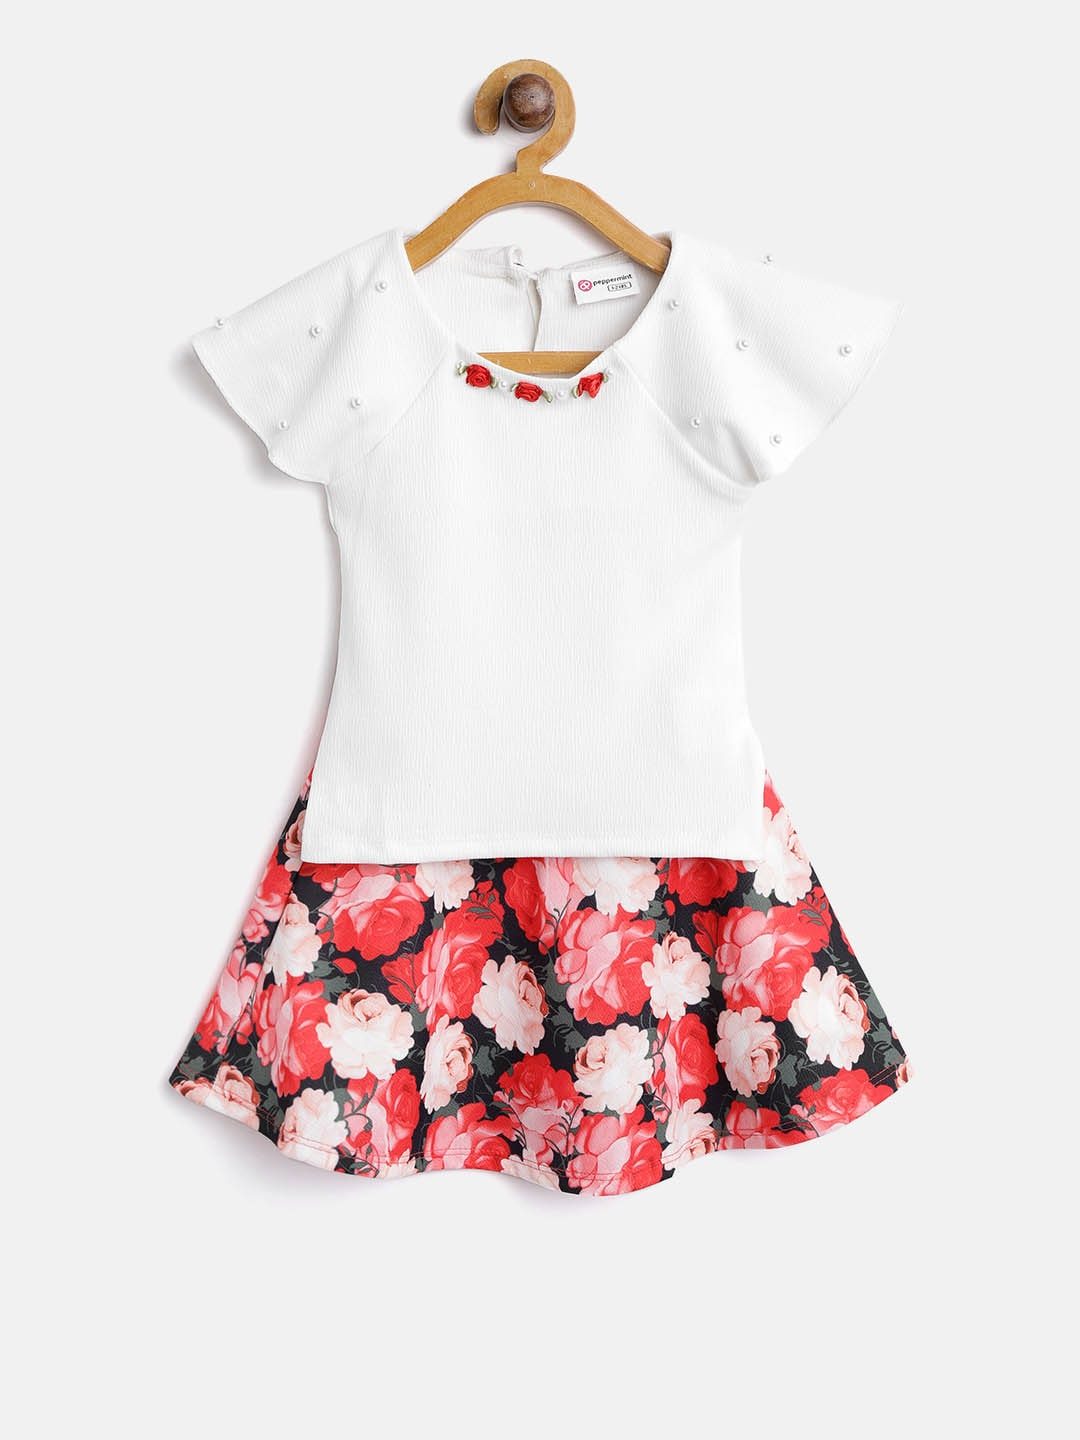 Baby Dresses Boutique Hyderabad